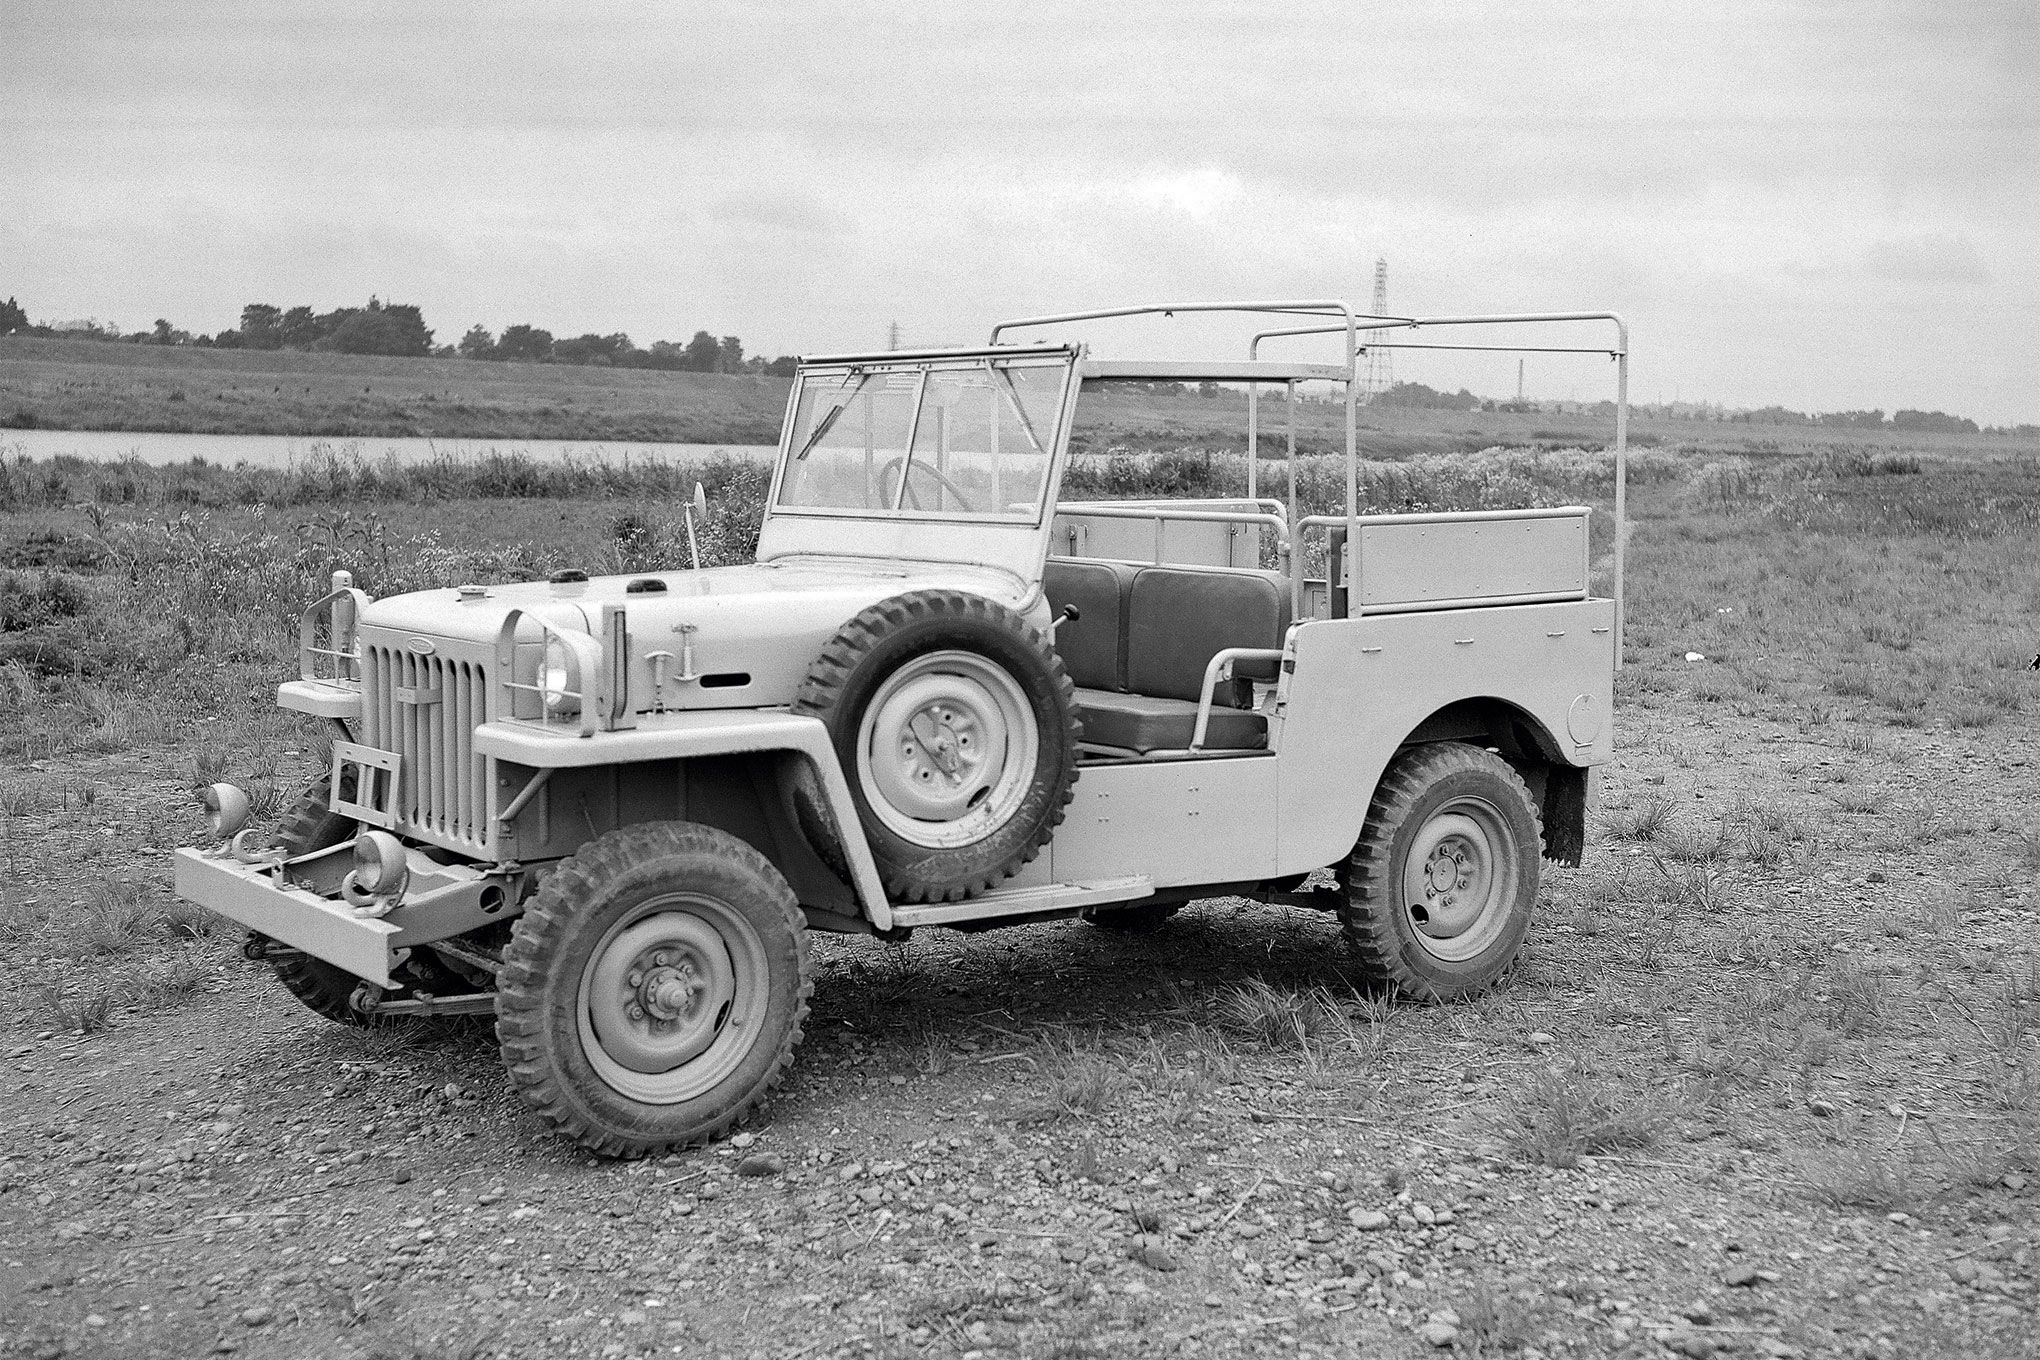 This Is How the Toyota Land Cruiser Has Evolved Over 70 Years